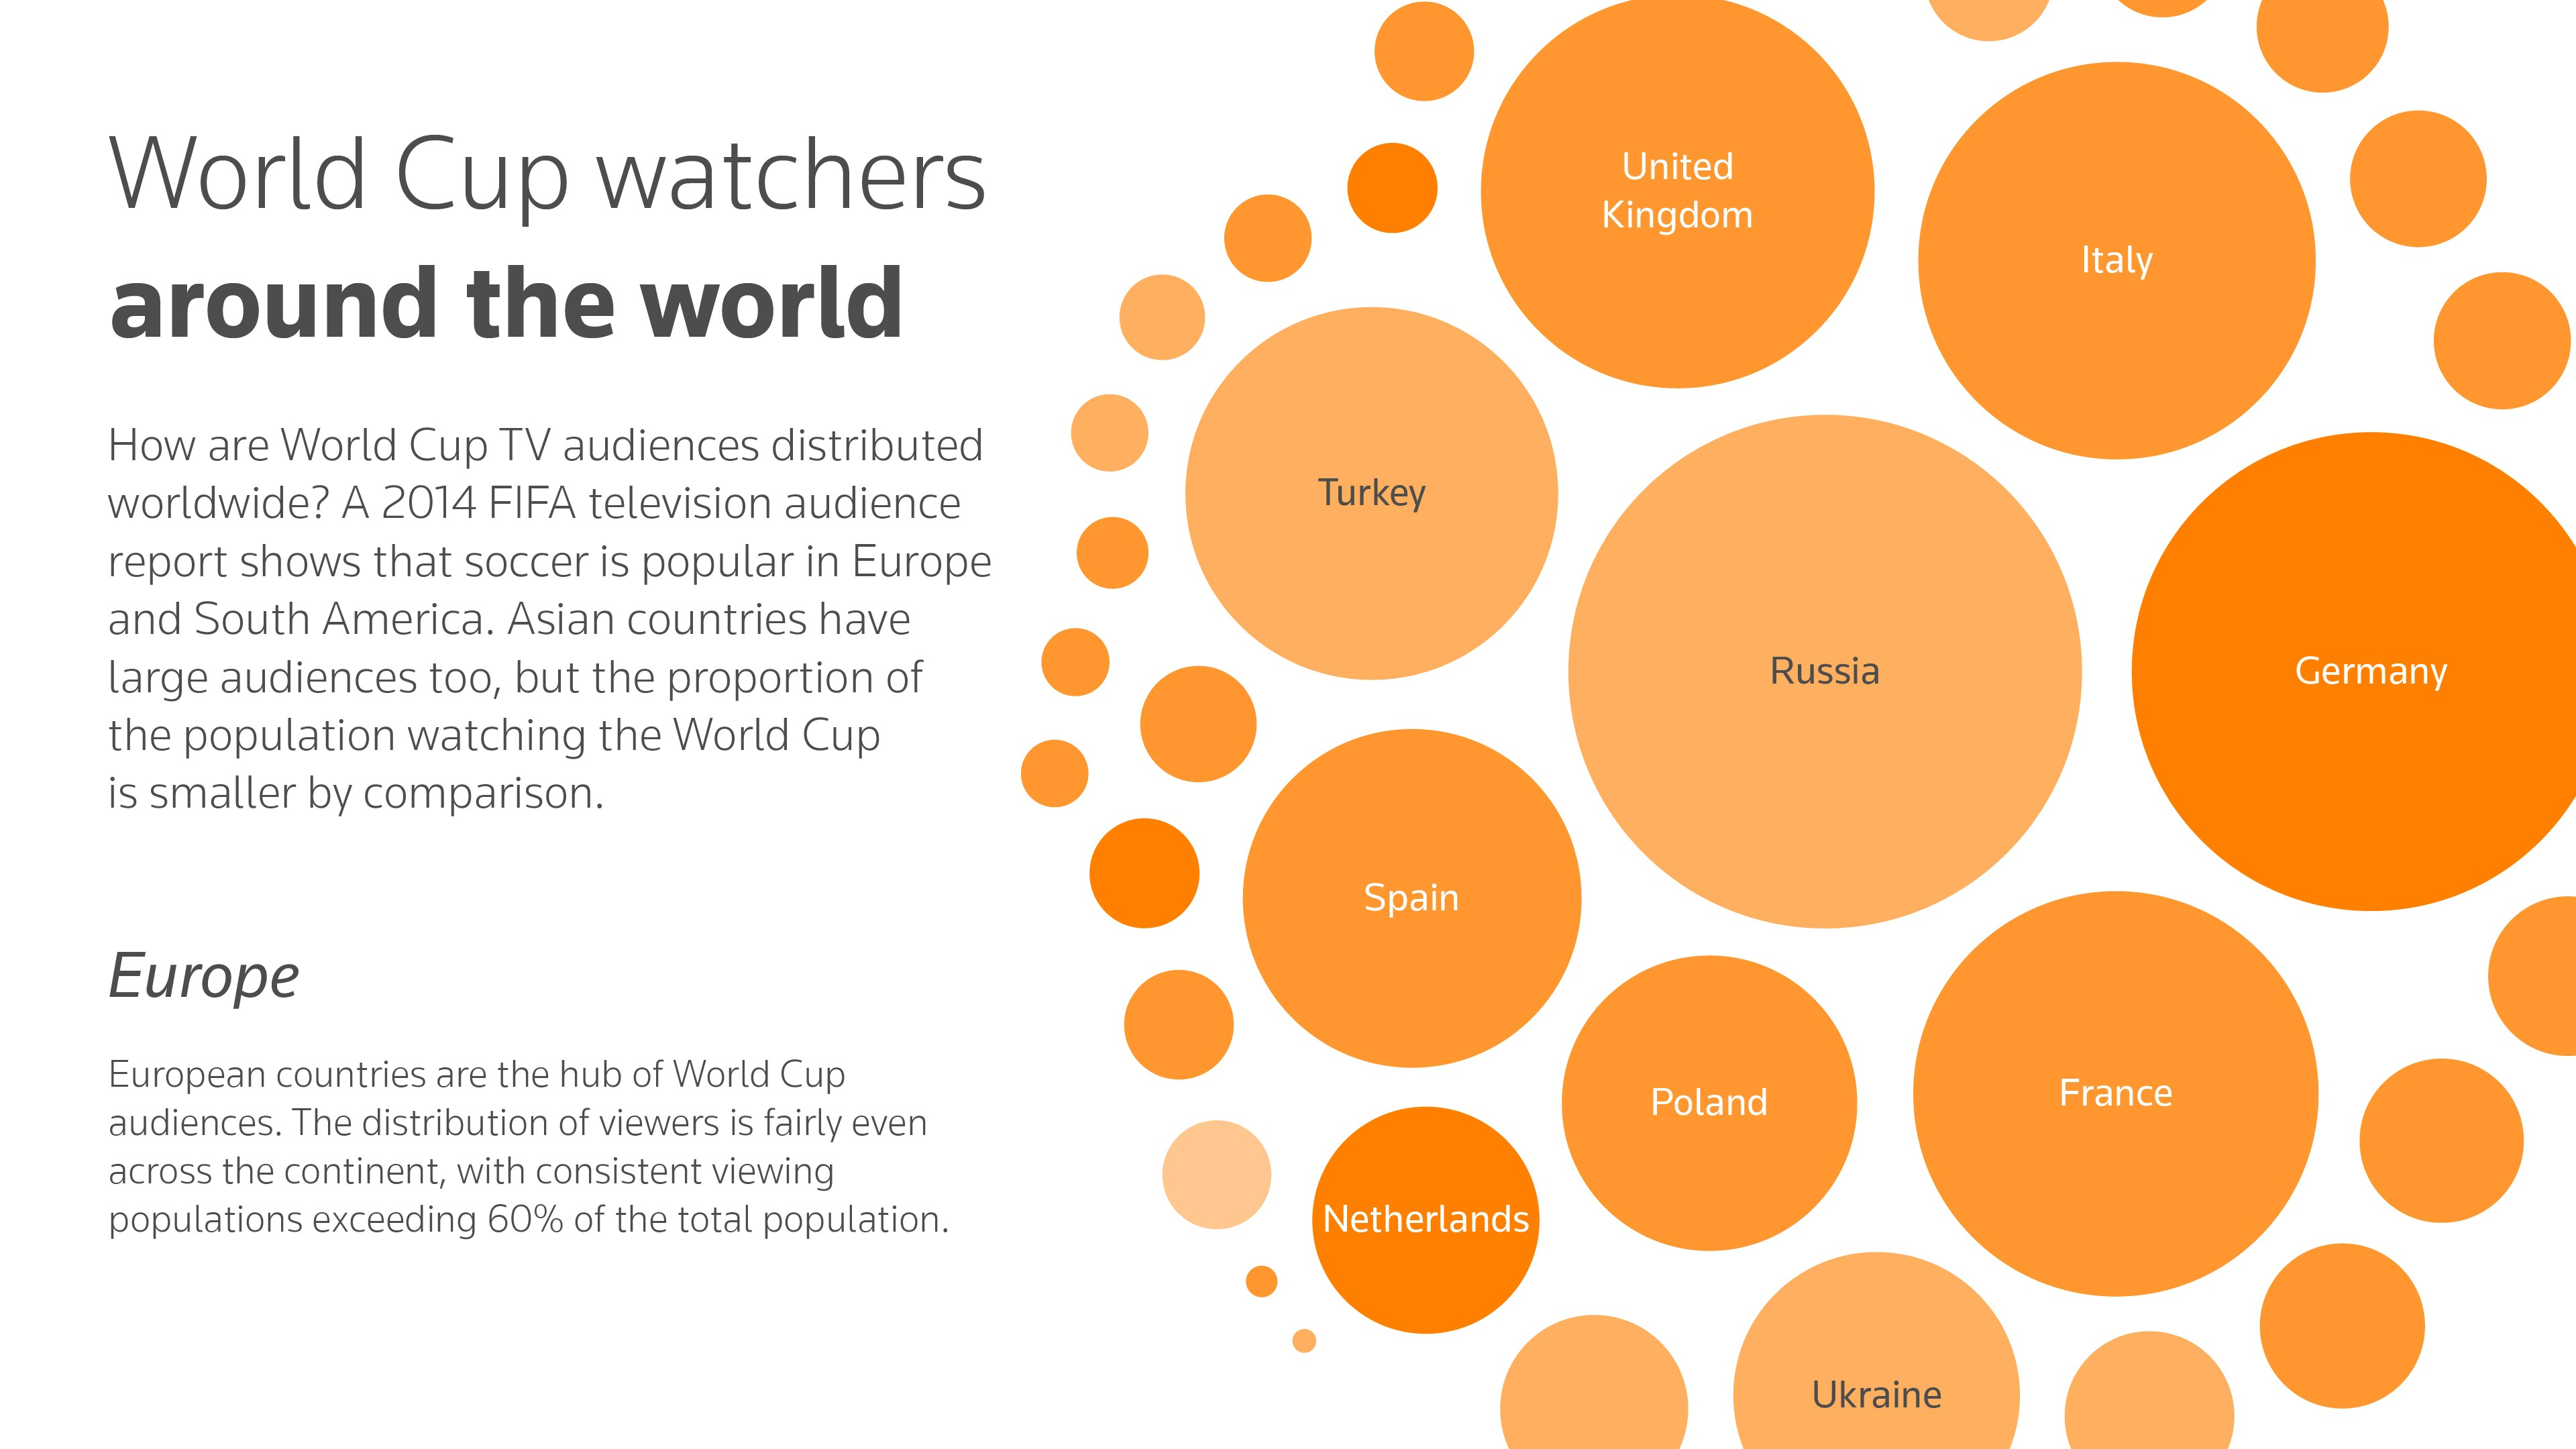 Infographic from Thomson Reuters Labs showing World Cup TV audiences spread around the world.